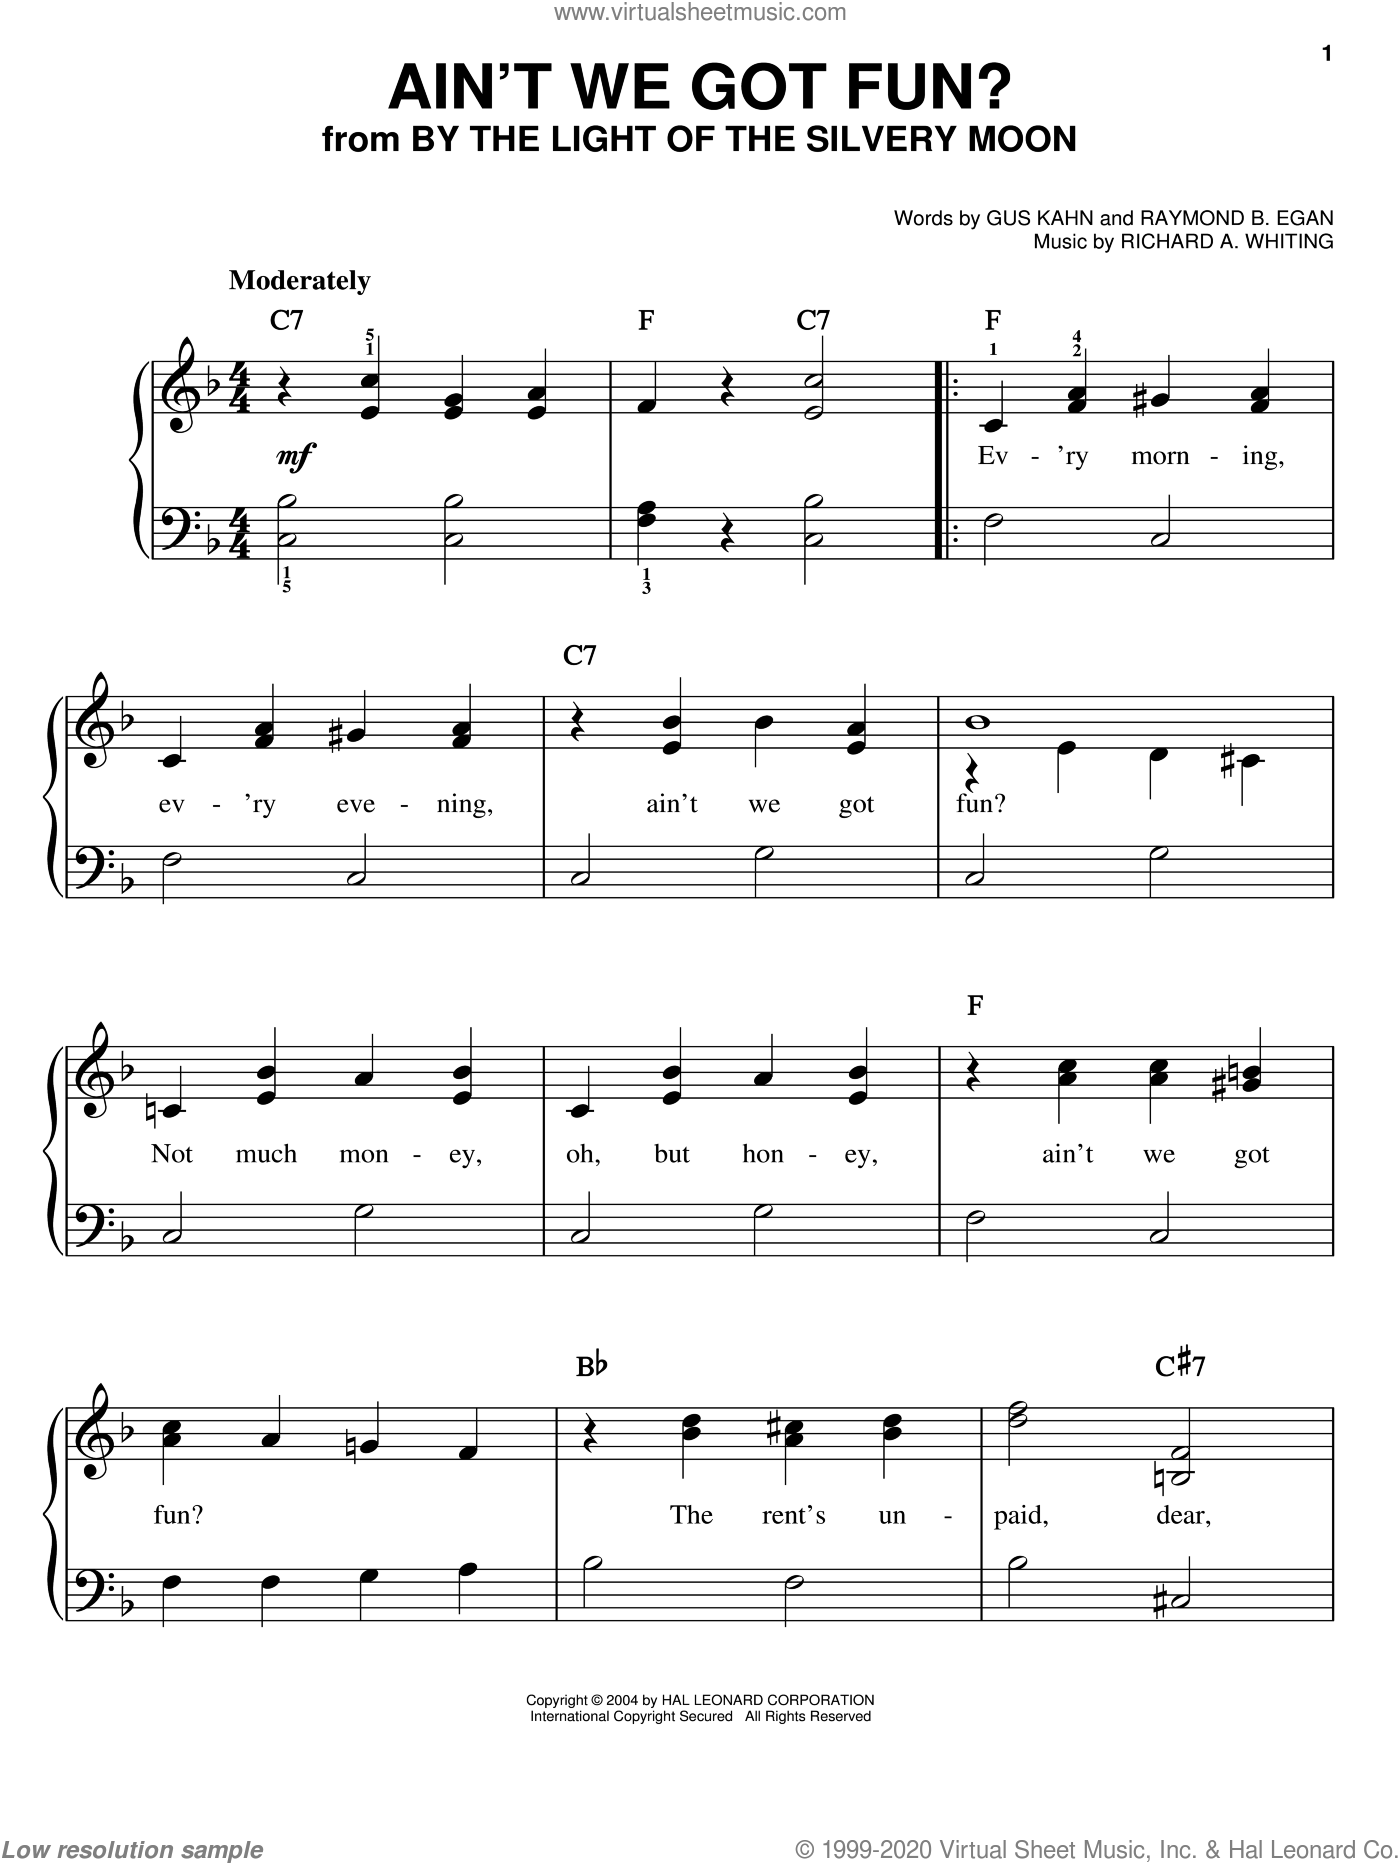 Ain't We Got Fun? sheet music for piano solo (chords) by Richard A. Whiting